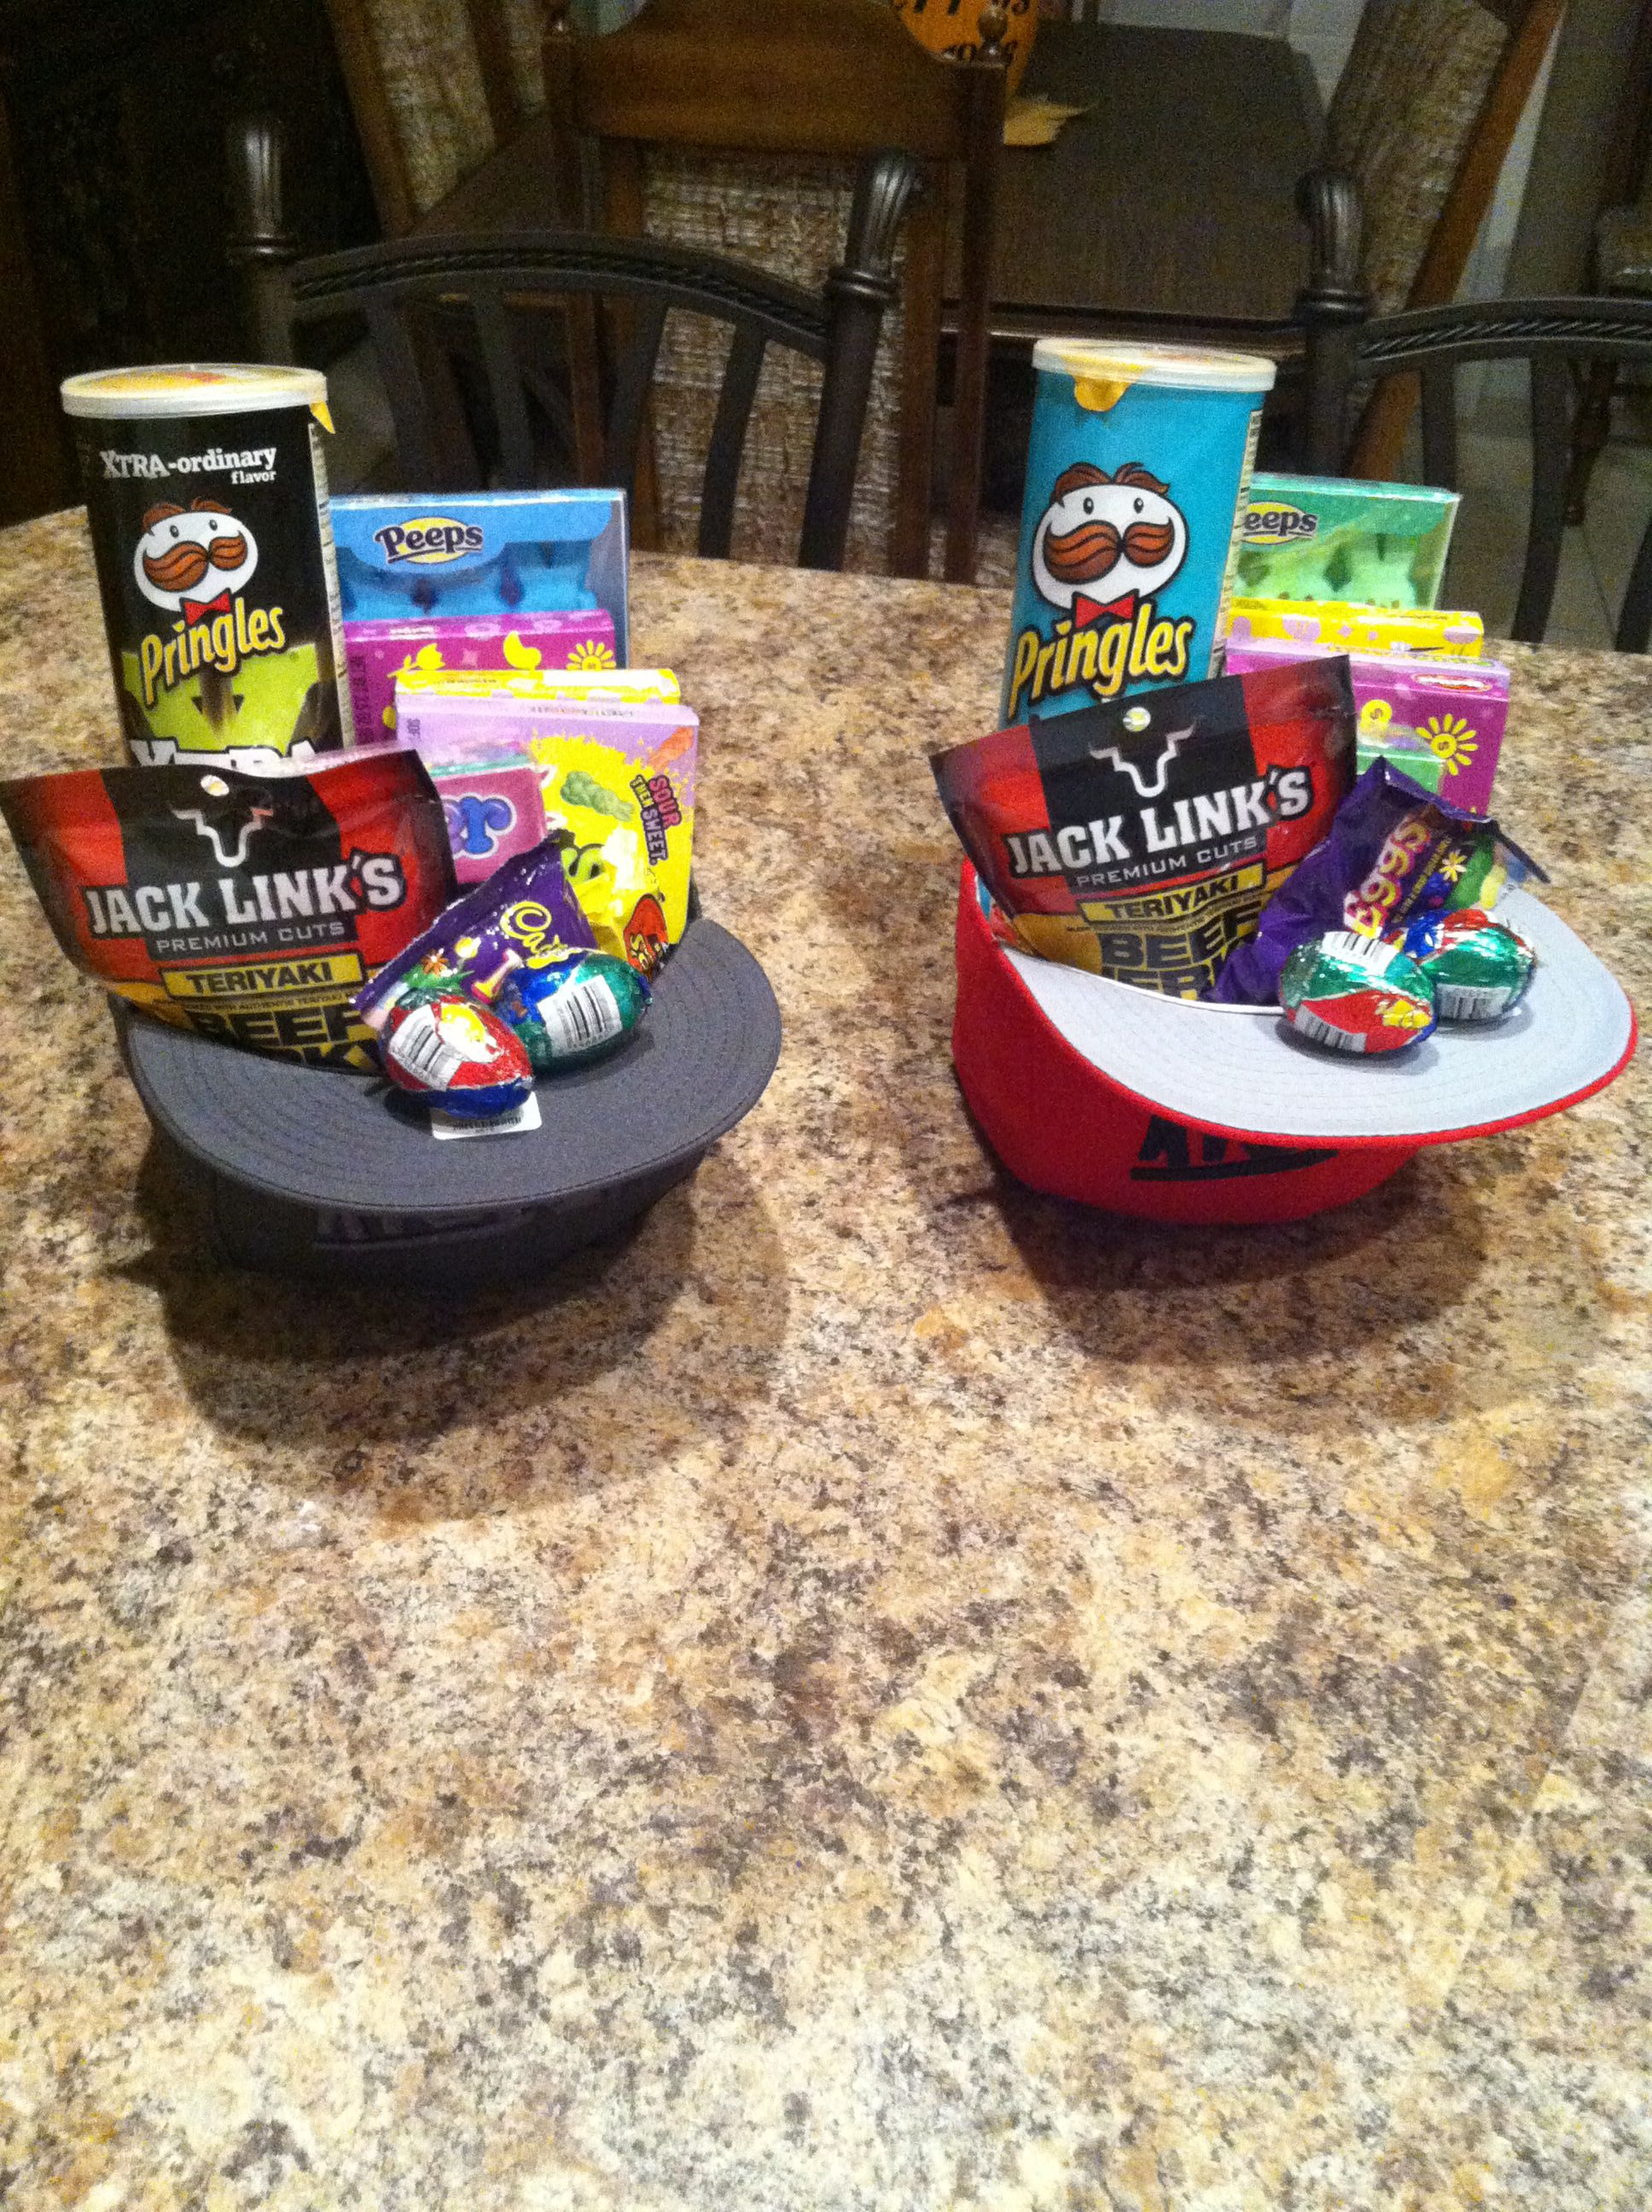 Easter basket instead of a traditional easter basket buy a hat 60 awesome gifts for guys theyll actually want teen boy gift basket would be a cute easter basket for little boy with hat new swim trunks and sunglasses negle Choice Image